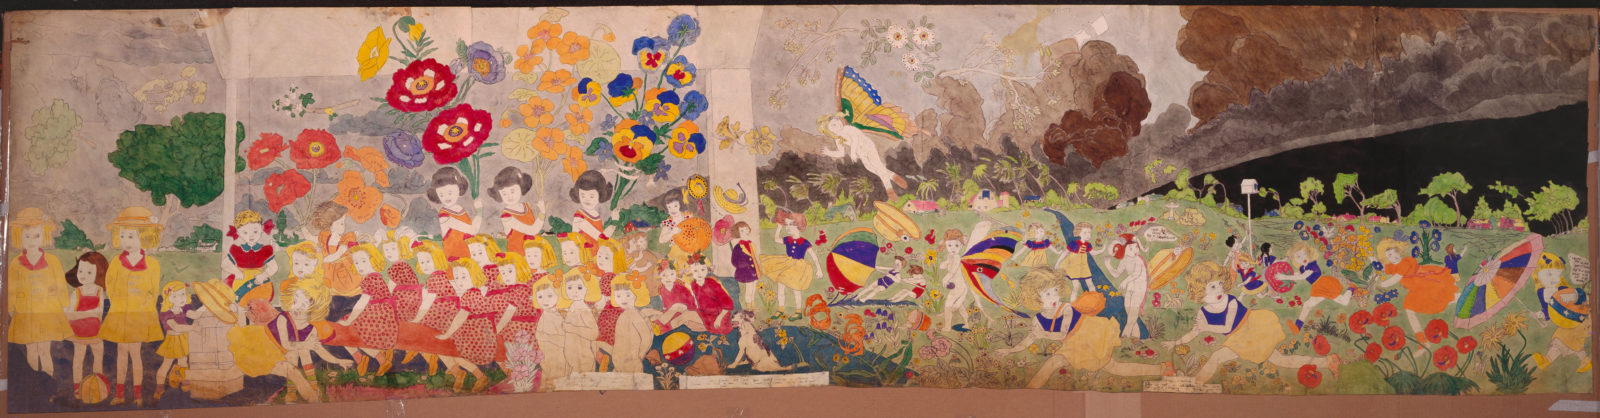 Henry Darger, Storm brewing.